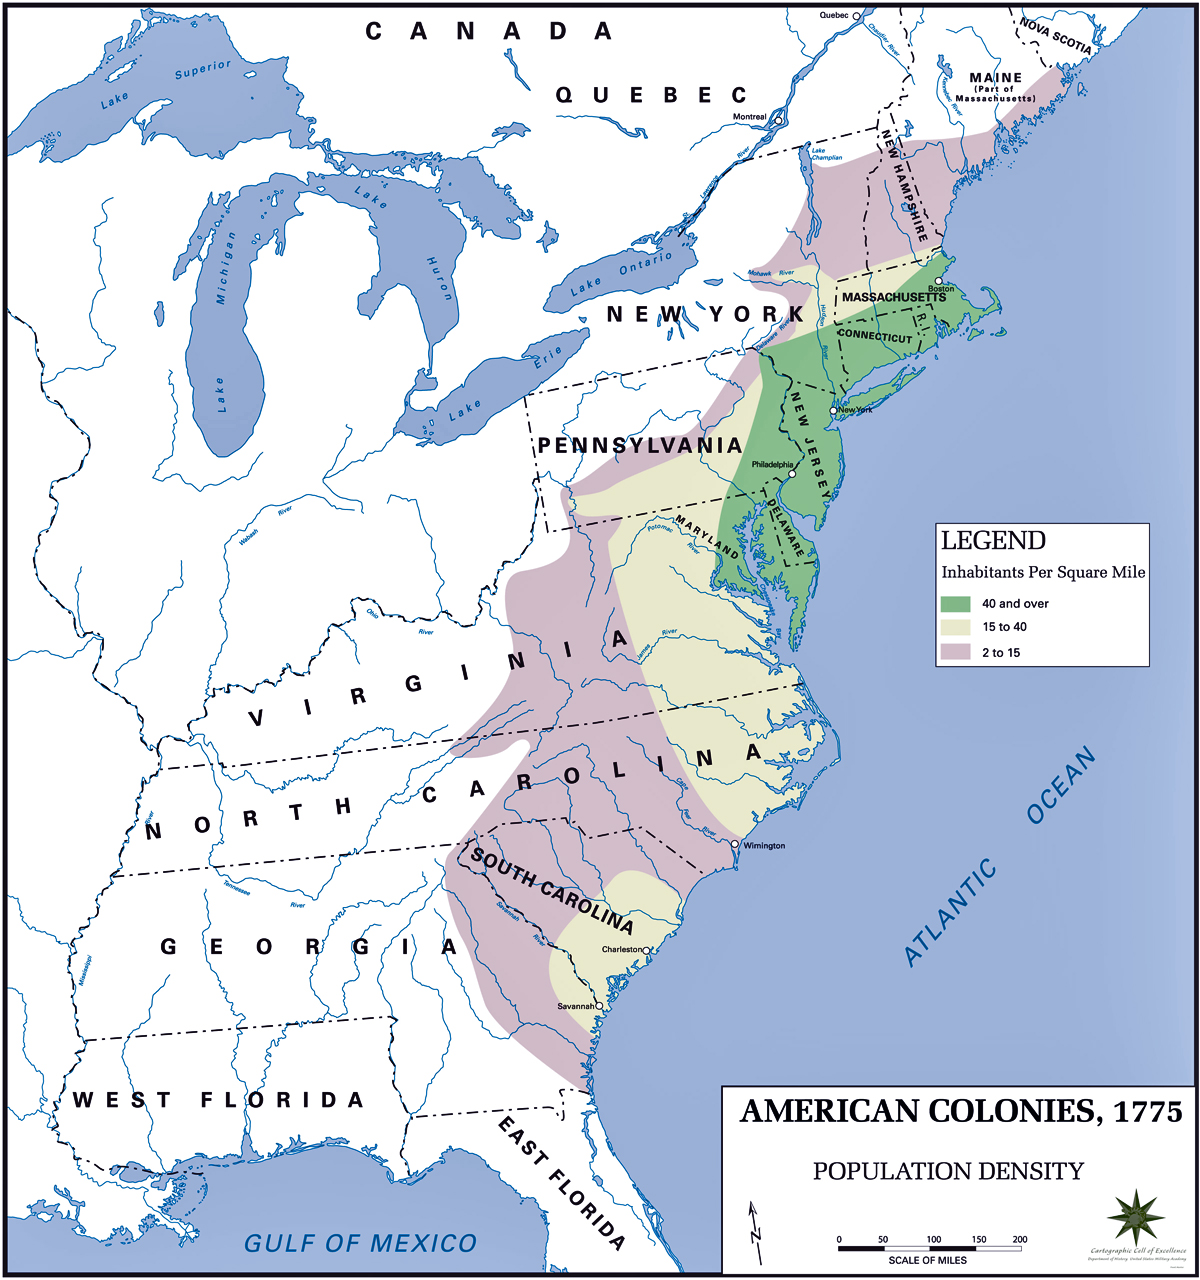 Map of the American Colonies: Population Density 1775